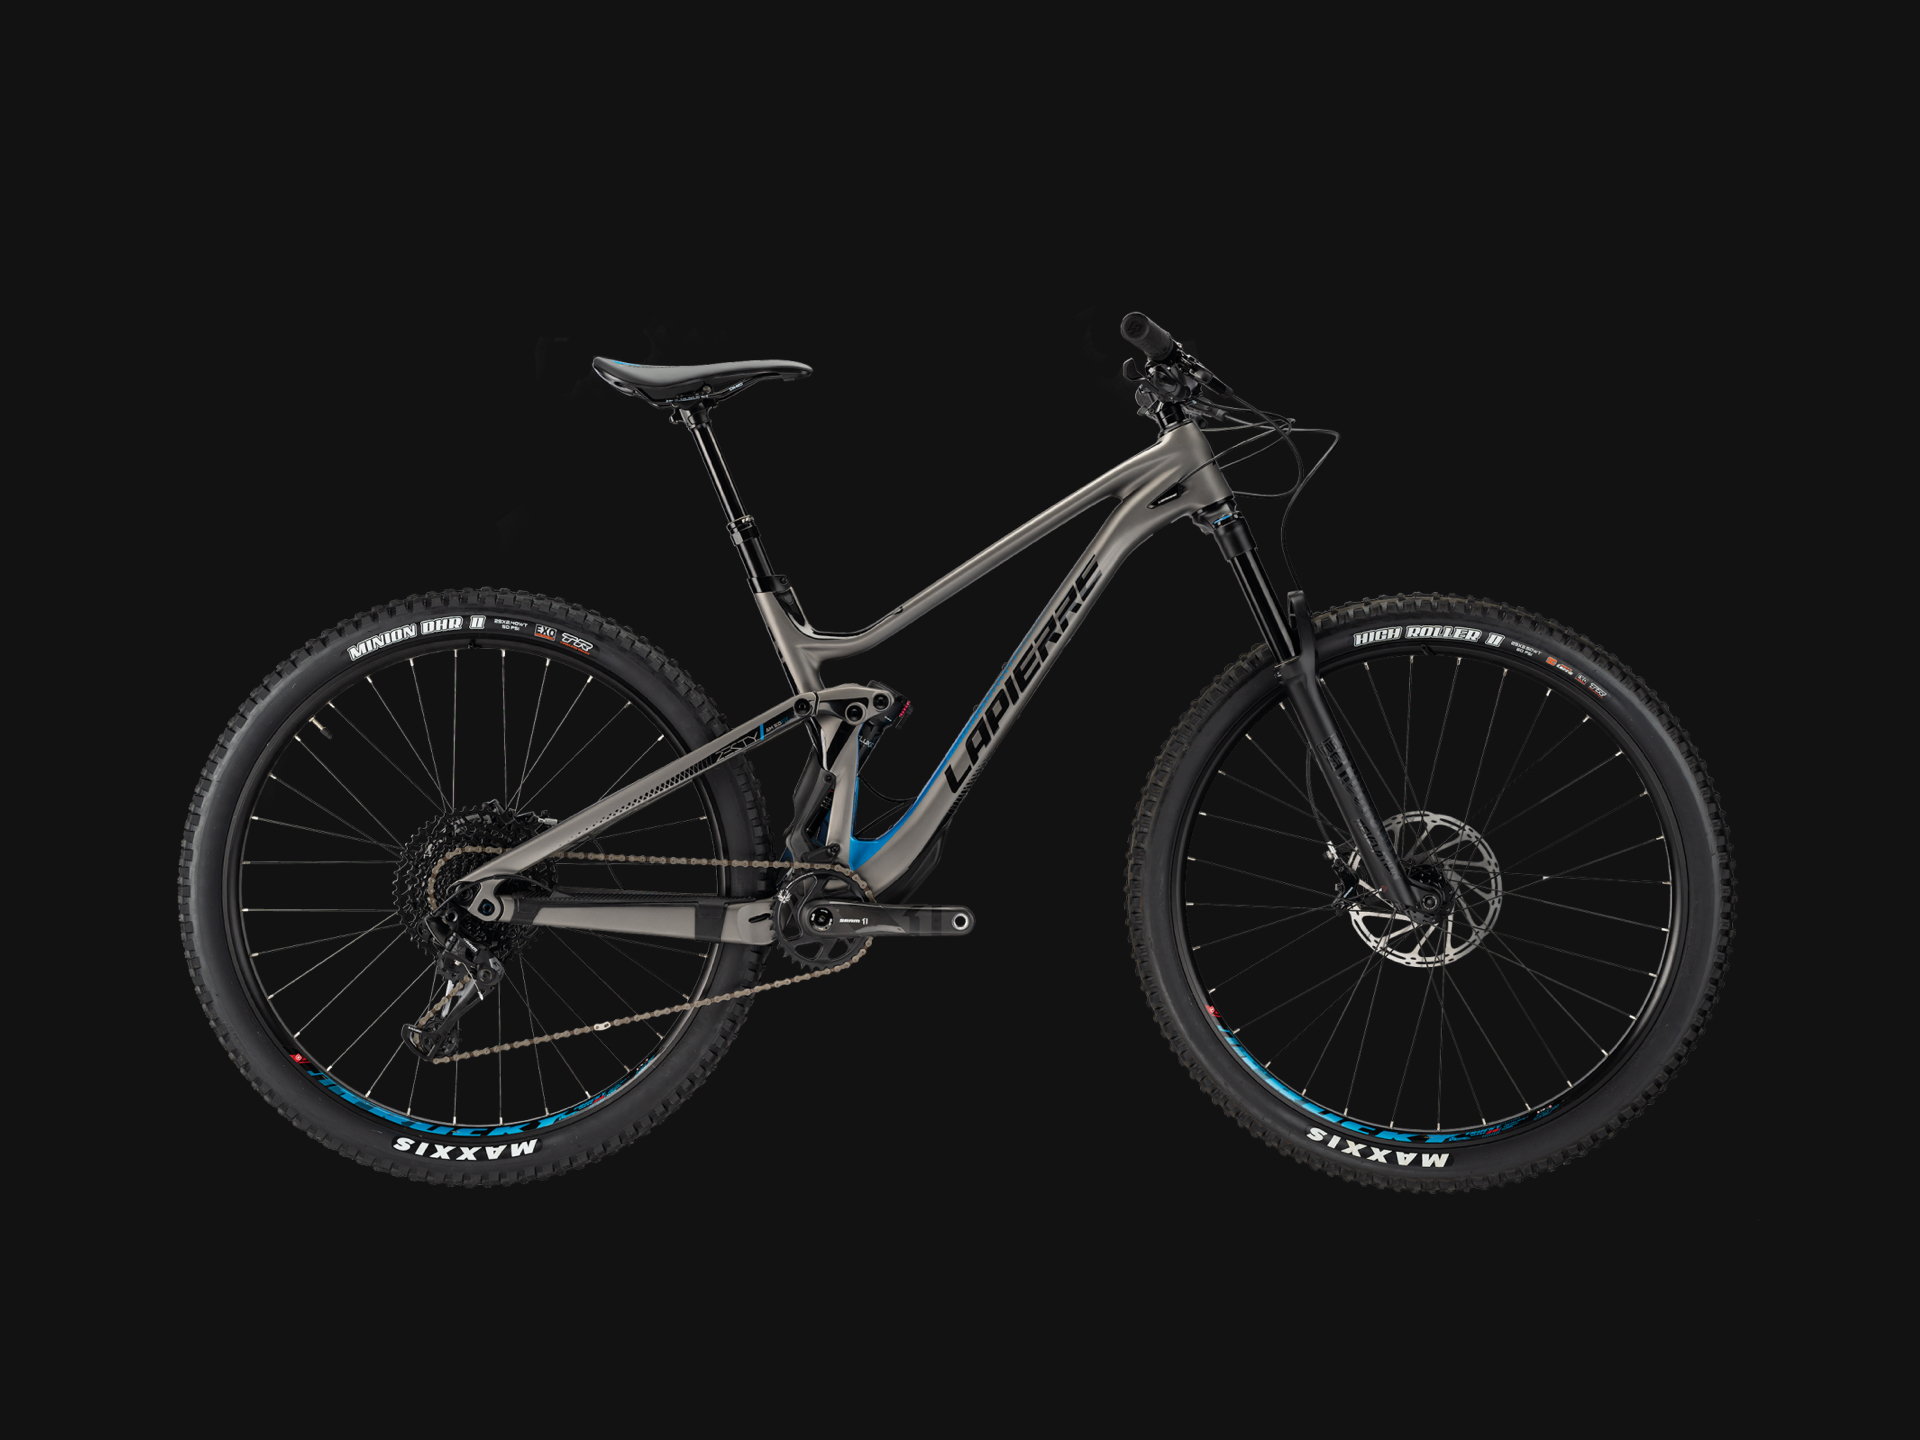 Lapierre Zesty AM Fit 5.0 2020 MTB All-Mountain